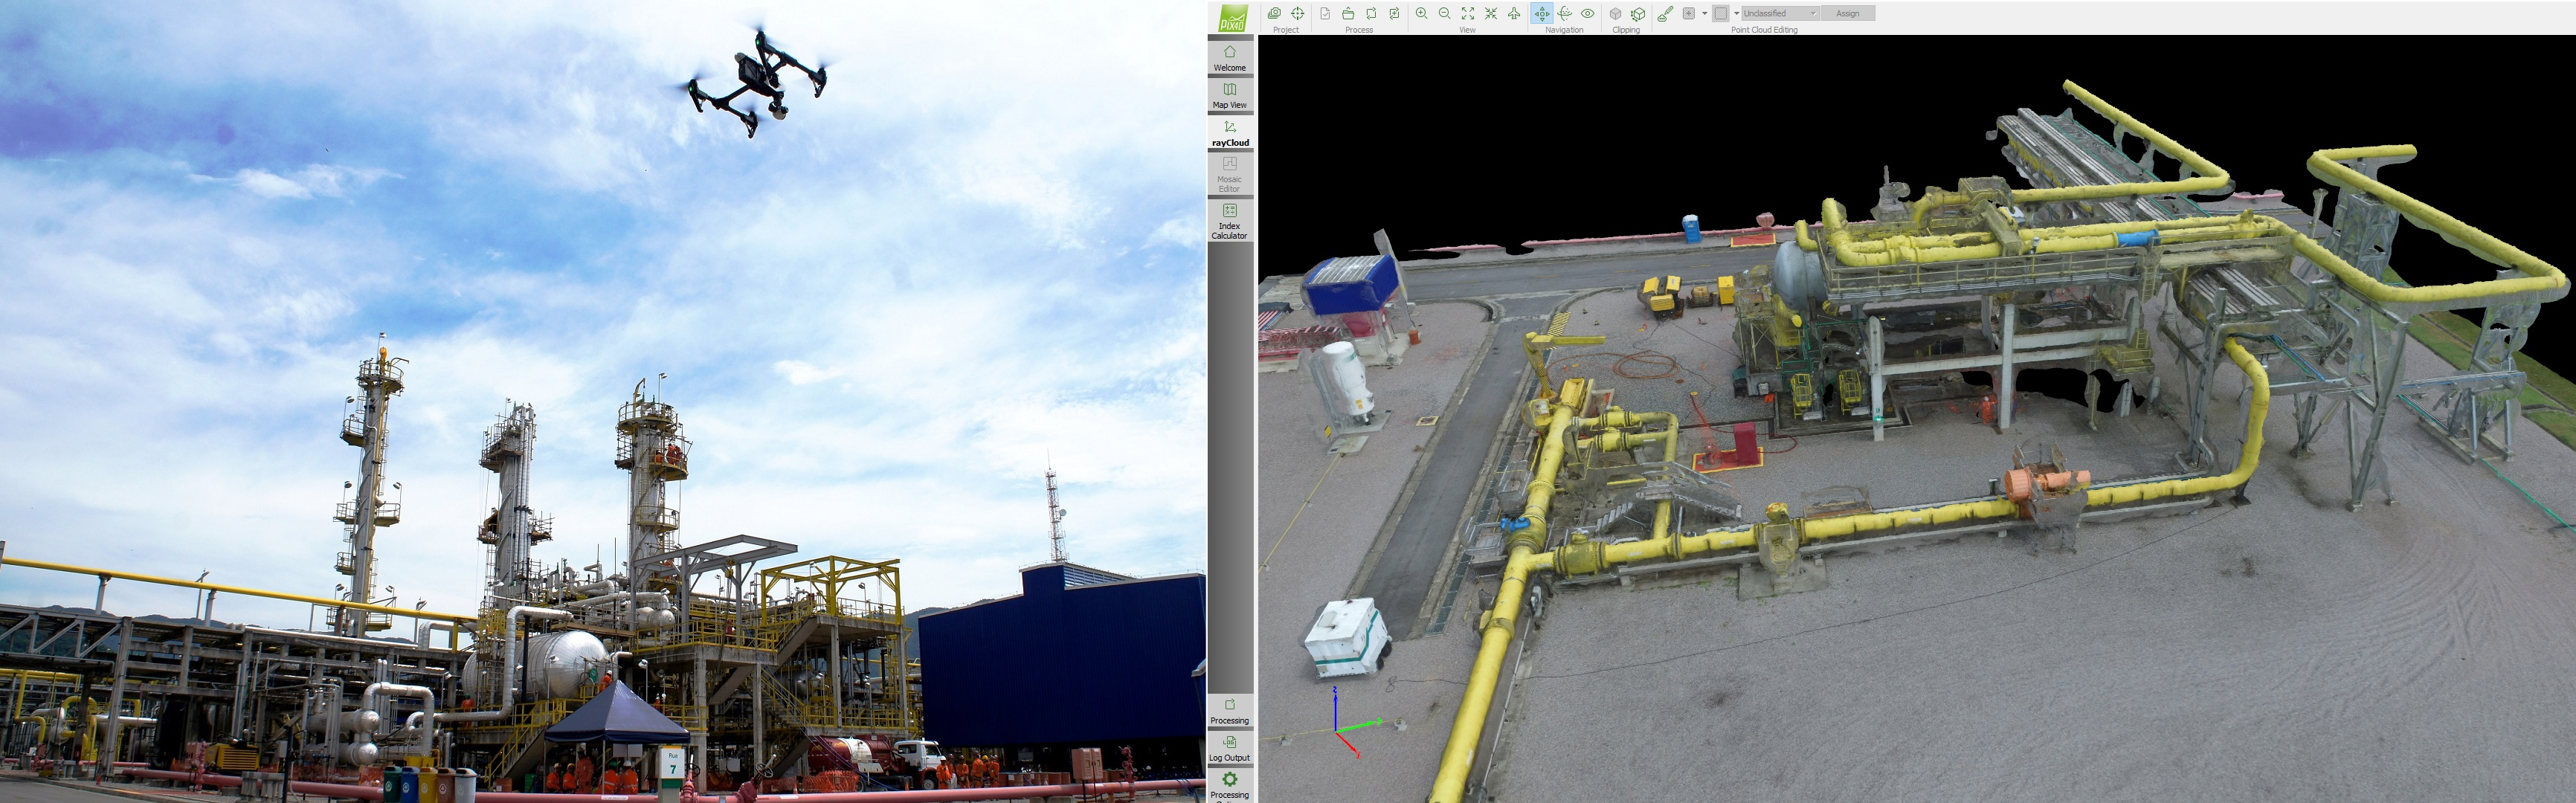 A drone flying above a plant, and a screenshot of the resulting 3D model.